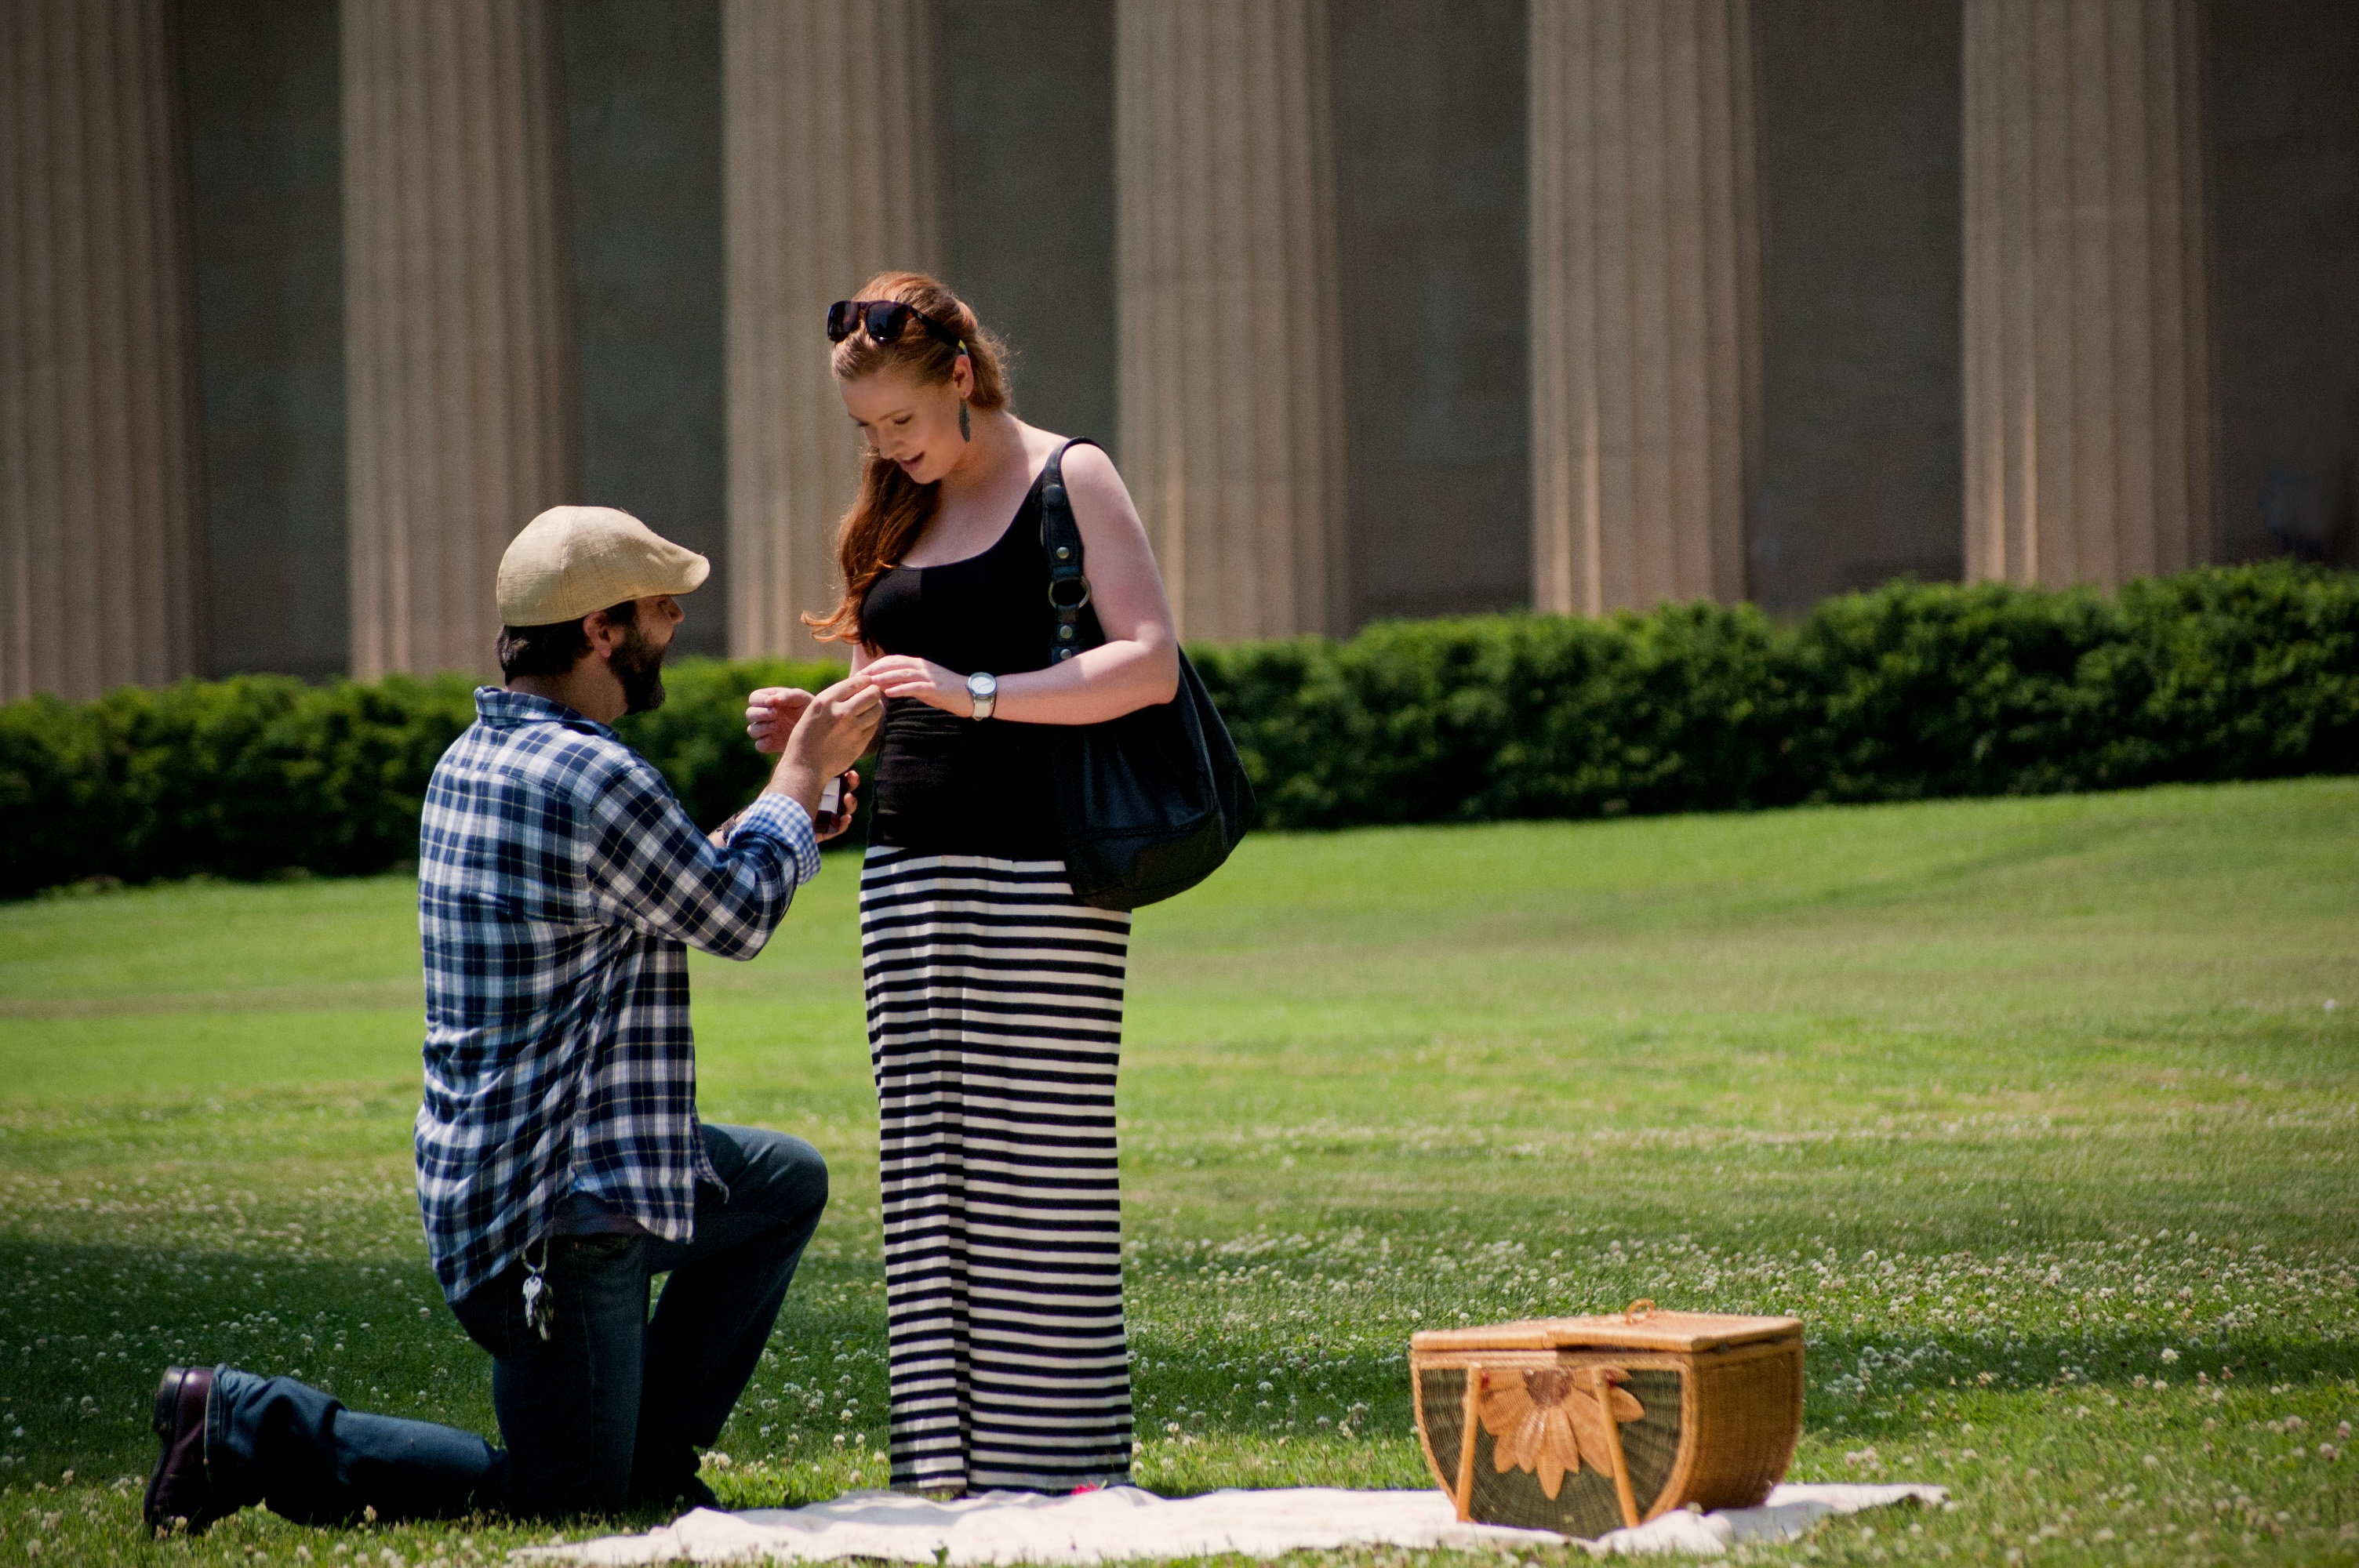 Chris and Leah proposal